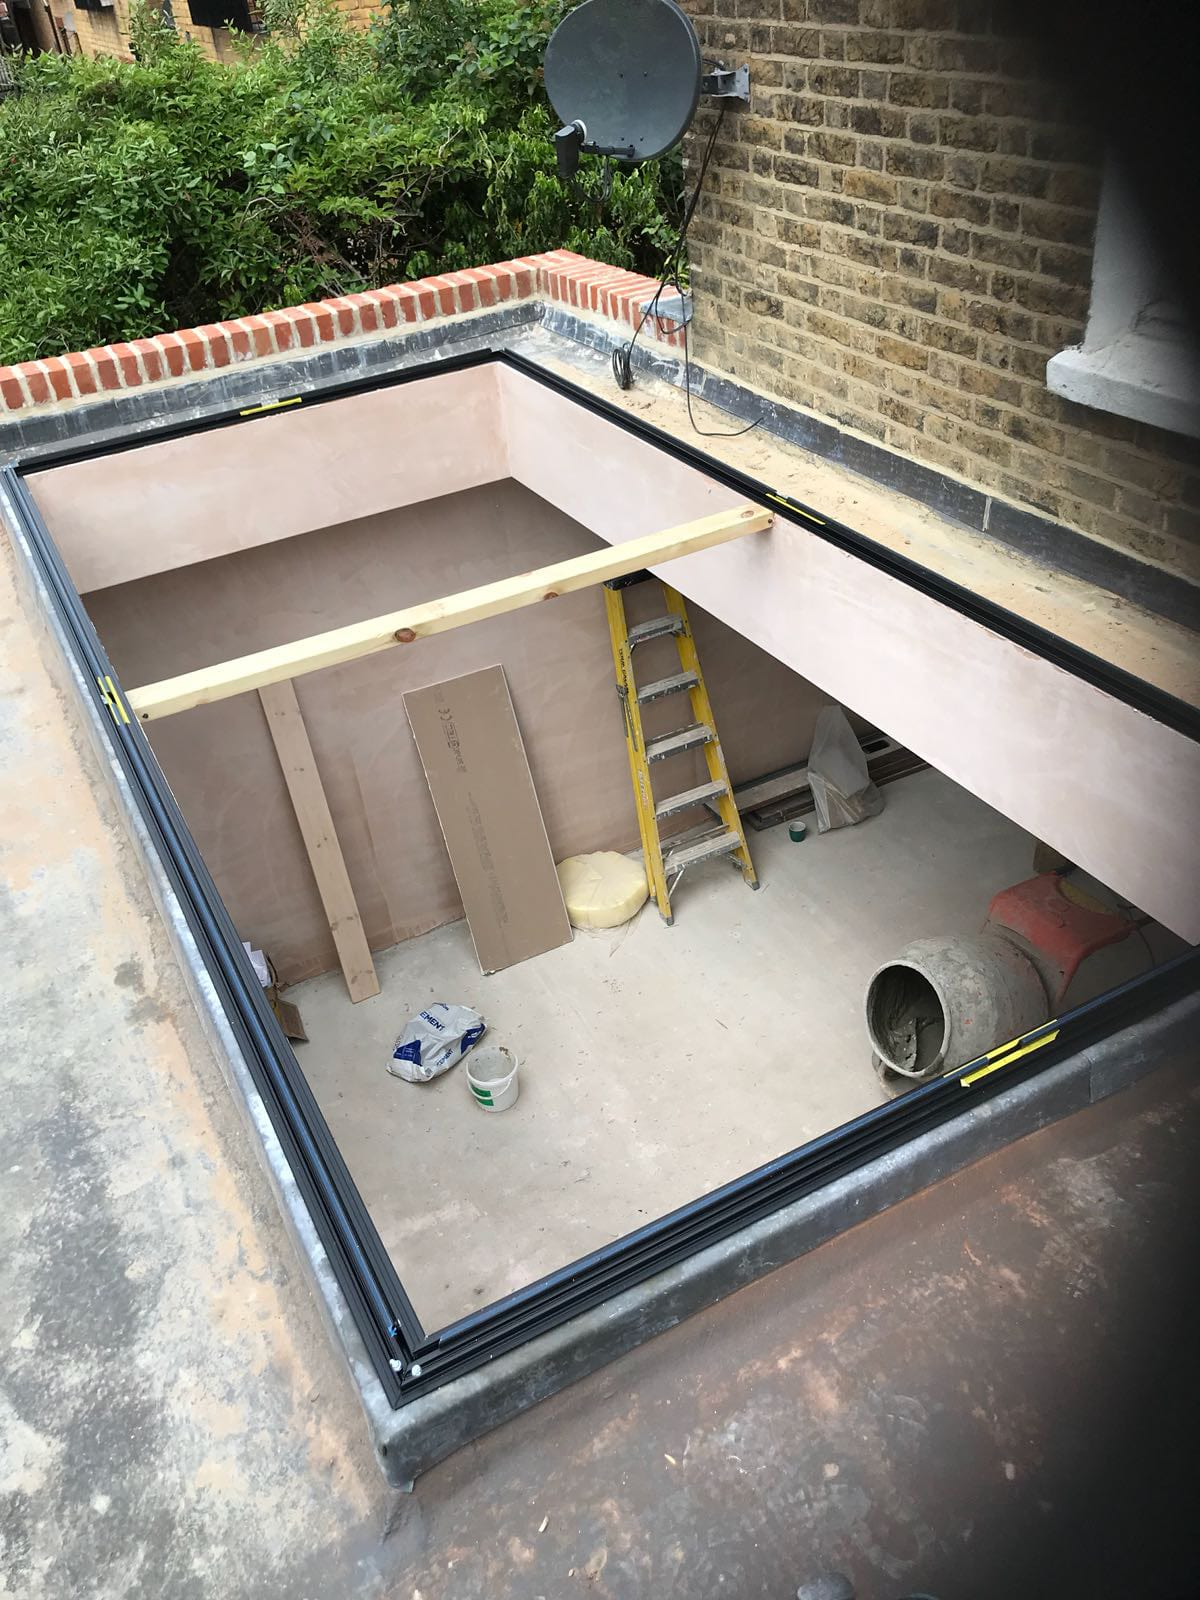 We shine a spotlight on how our expert team overcome window & door installation challenges. Includes meeting fast turnarounds, managing limited access to a property & finding solutions if let down by a supplier. Read more now